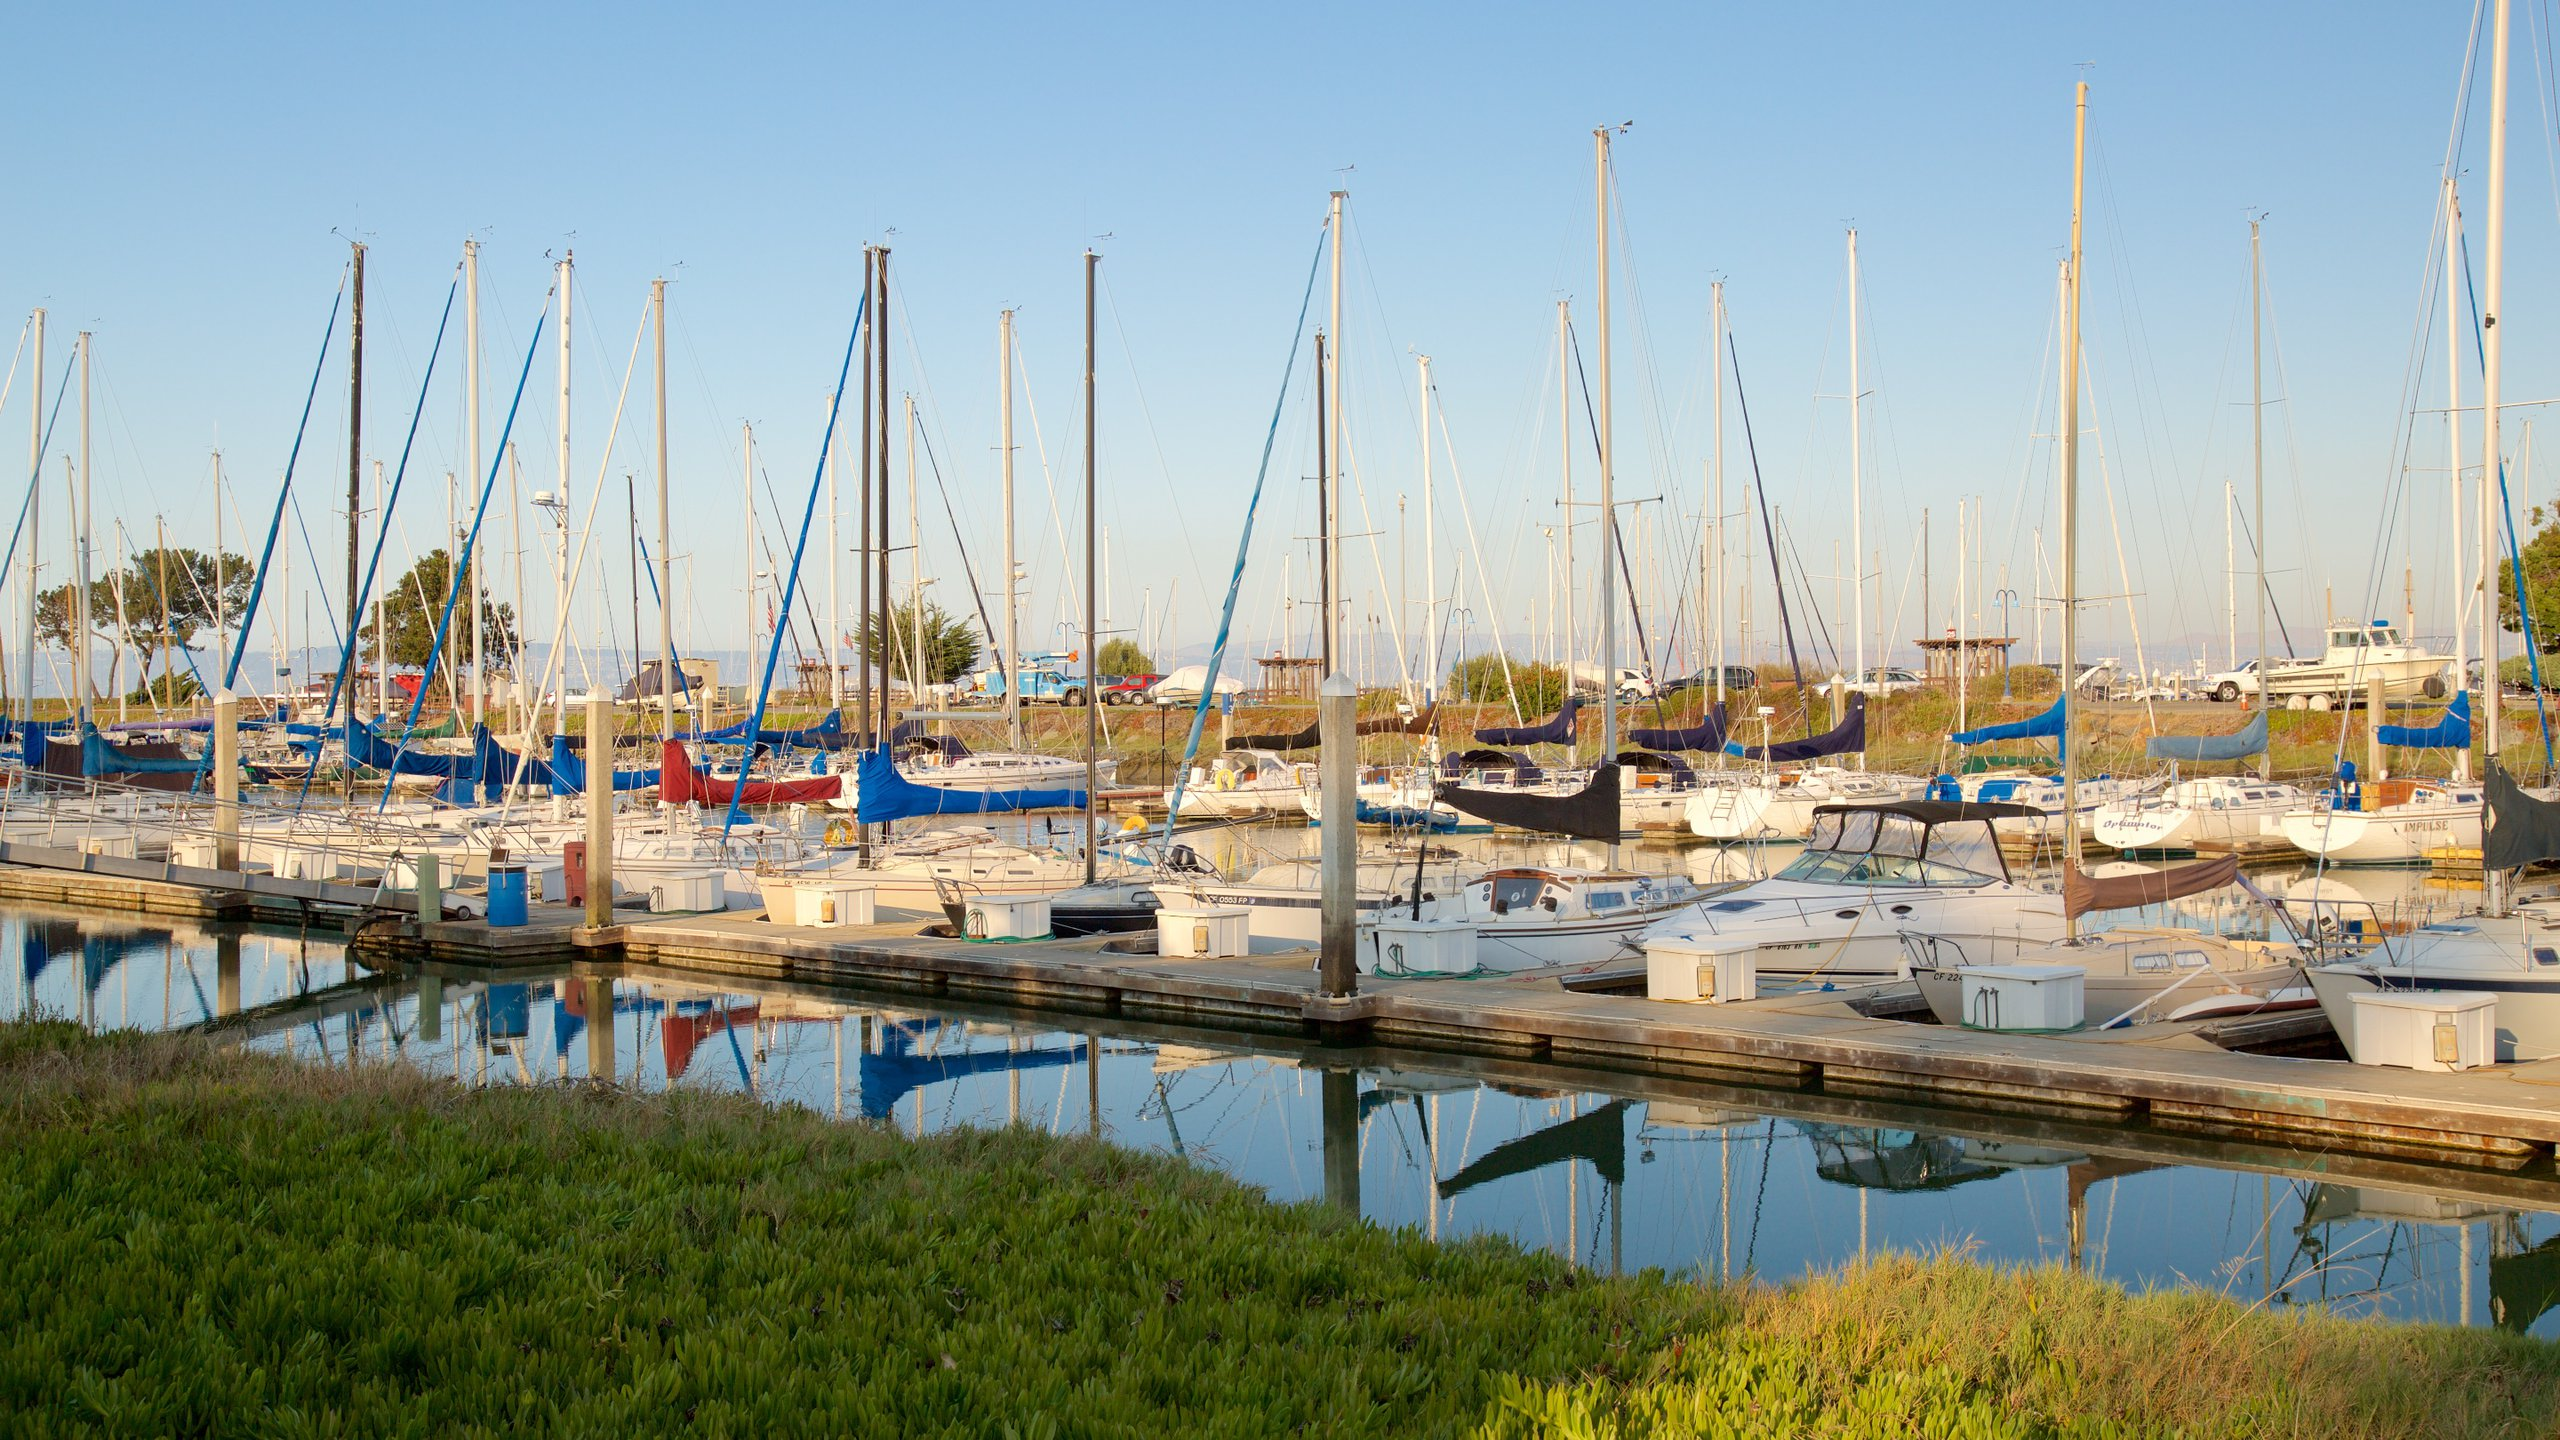 Coyote Point Park, San Mateo, California, United States of America